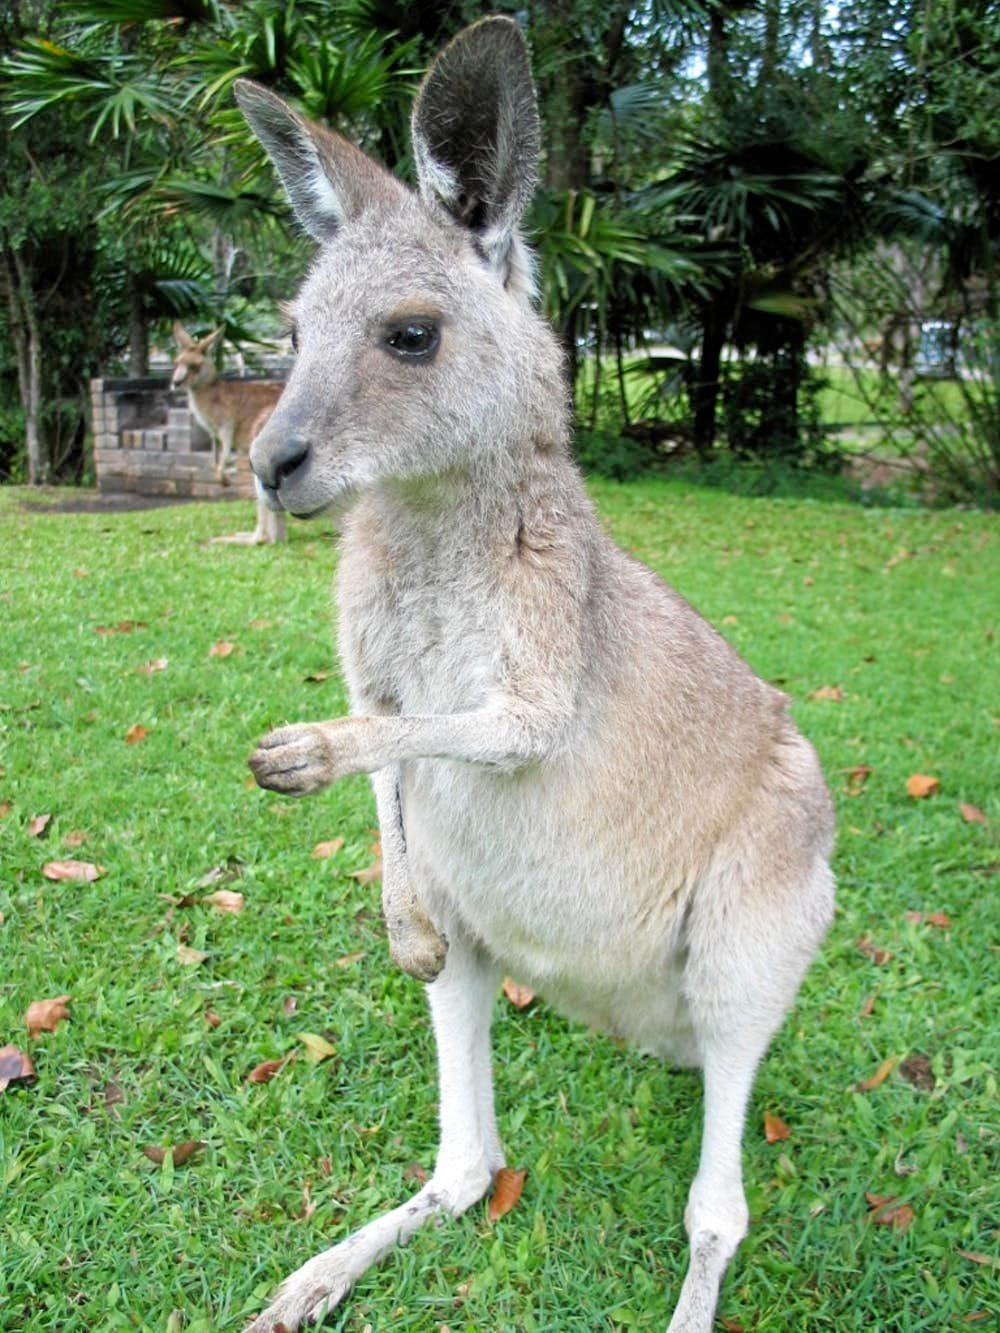 RIGHT OR LEFT: Research suggests most kangaroos are southpaws.